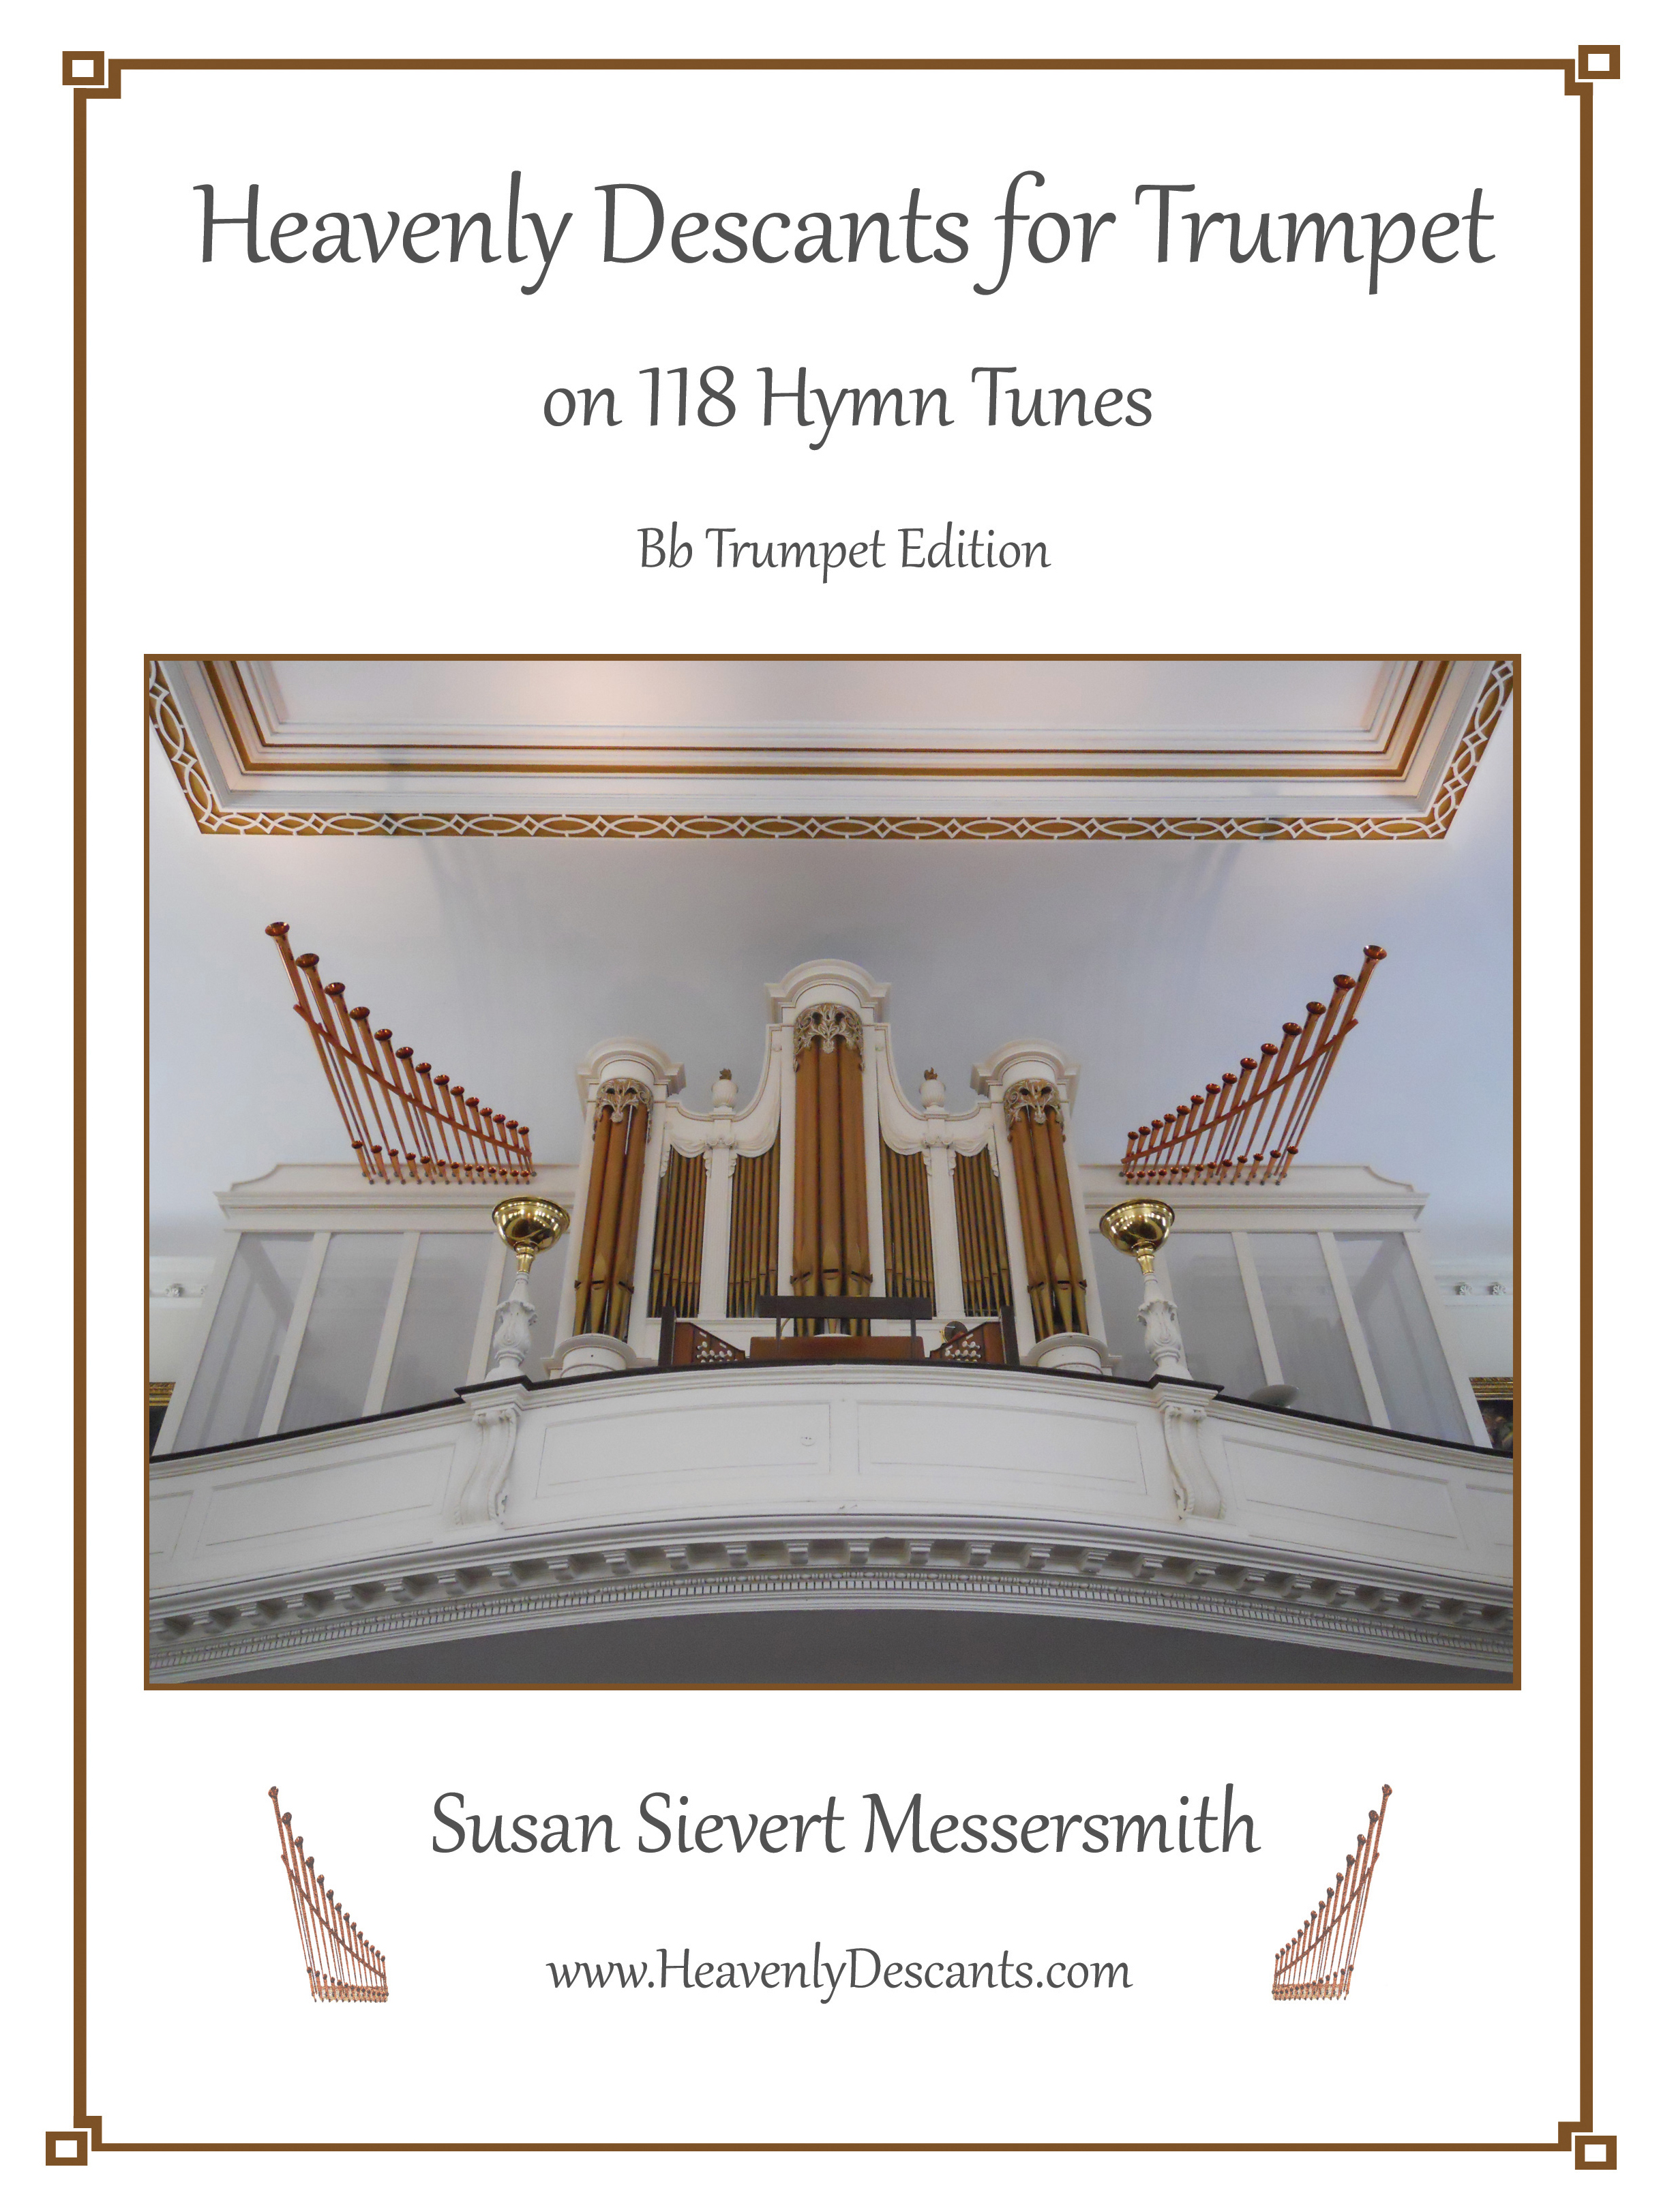 Heavenly Descants for Trumpet on 118 Hymn Tunes